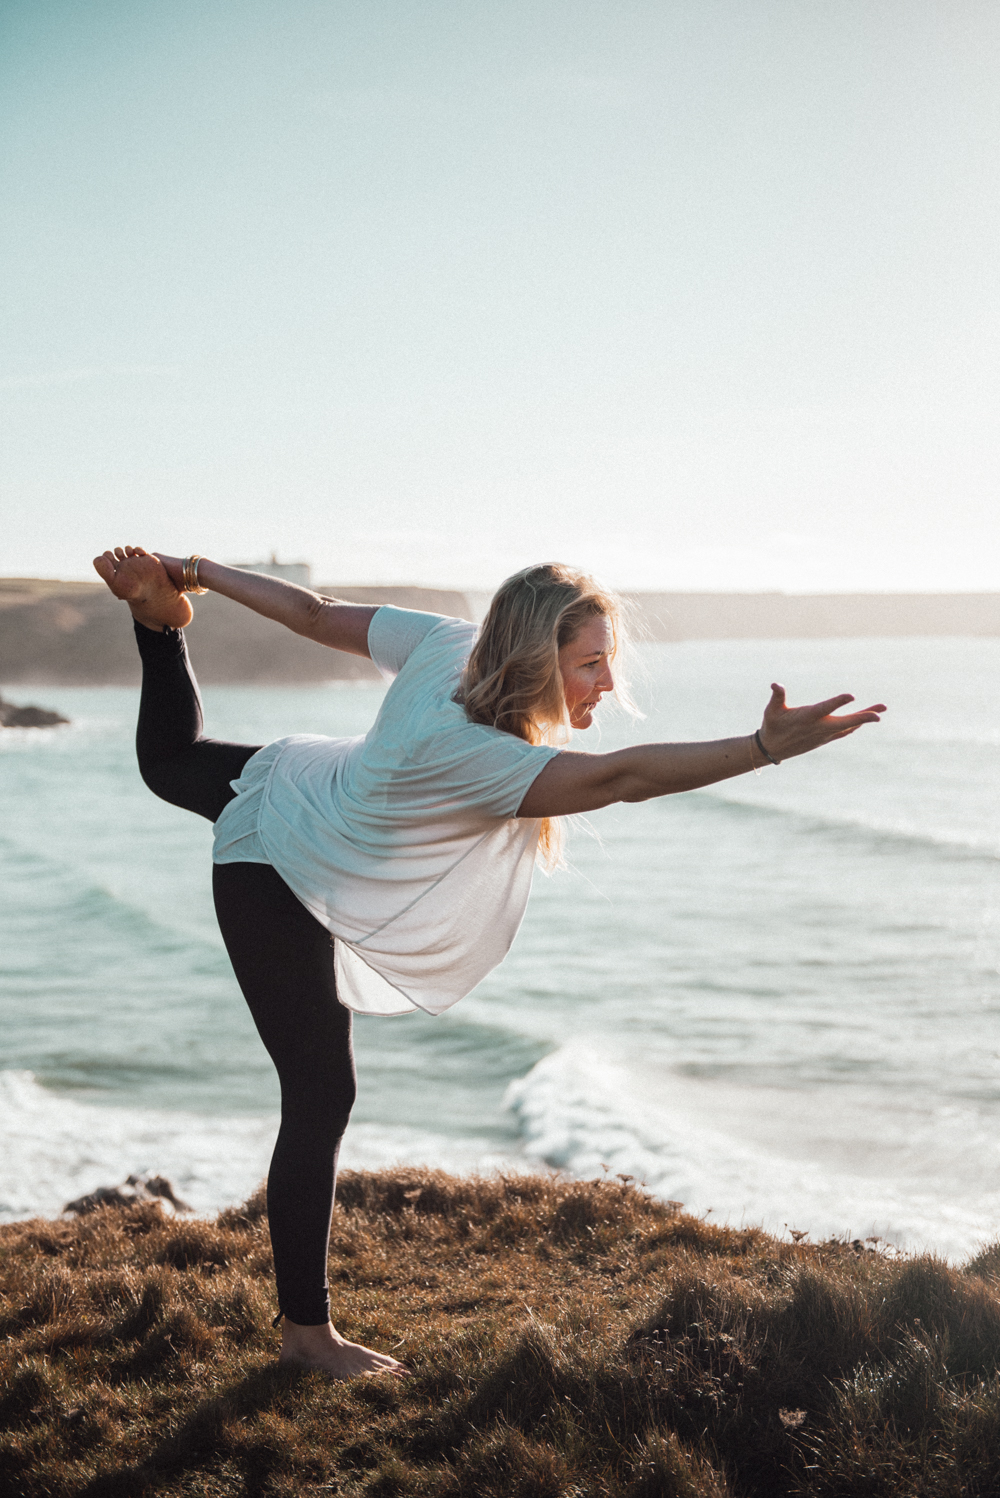 Yoga By The Sea // www.oliviabossert.com // Kyla Flegg, Onda Physio Yoga, Yoga practice, physio yoga, slow living, yoga by the sea, cornwall, cliff tops, ocean, namaste, wheel pose, handstand, chakra, peace